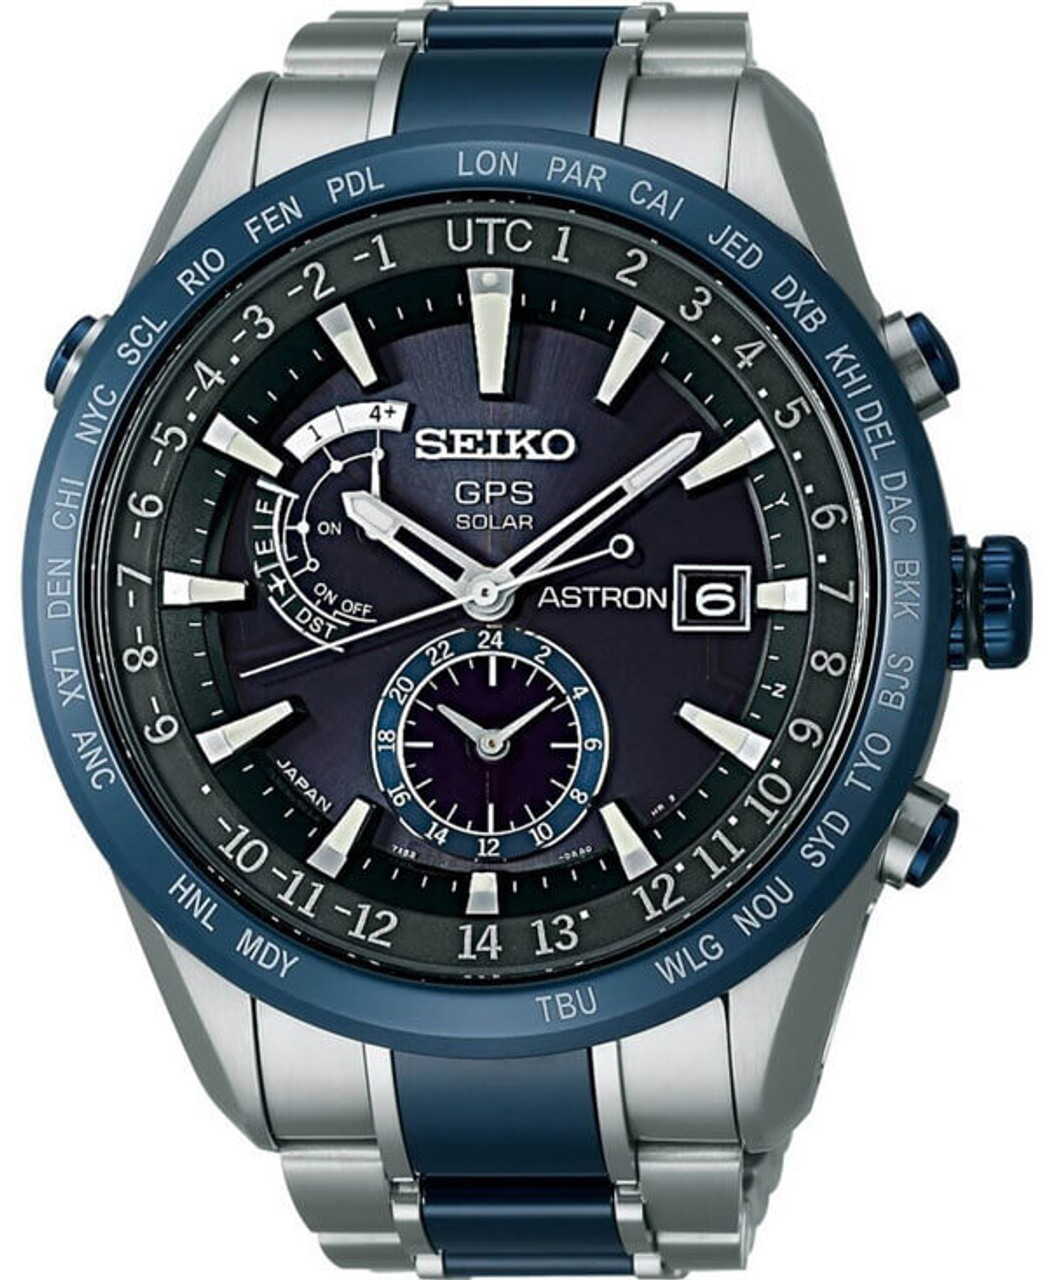 Seiko Astron SAST019G High Intensity Titanium (SAST019)